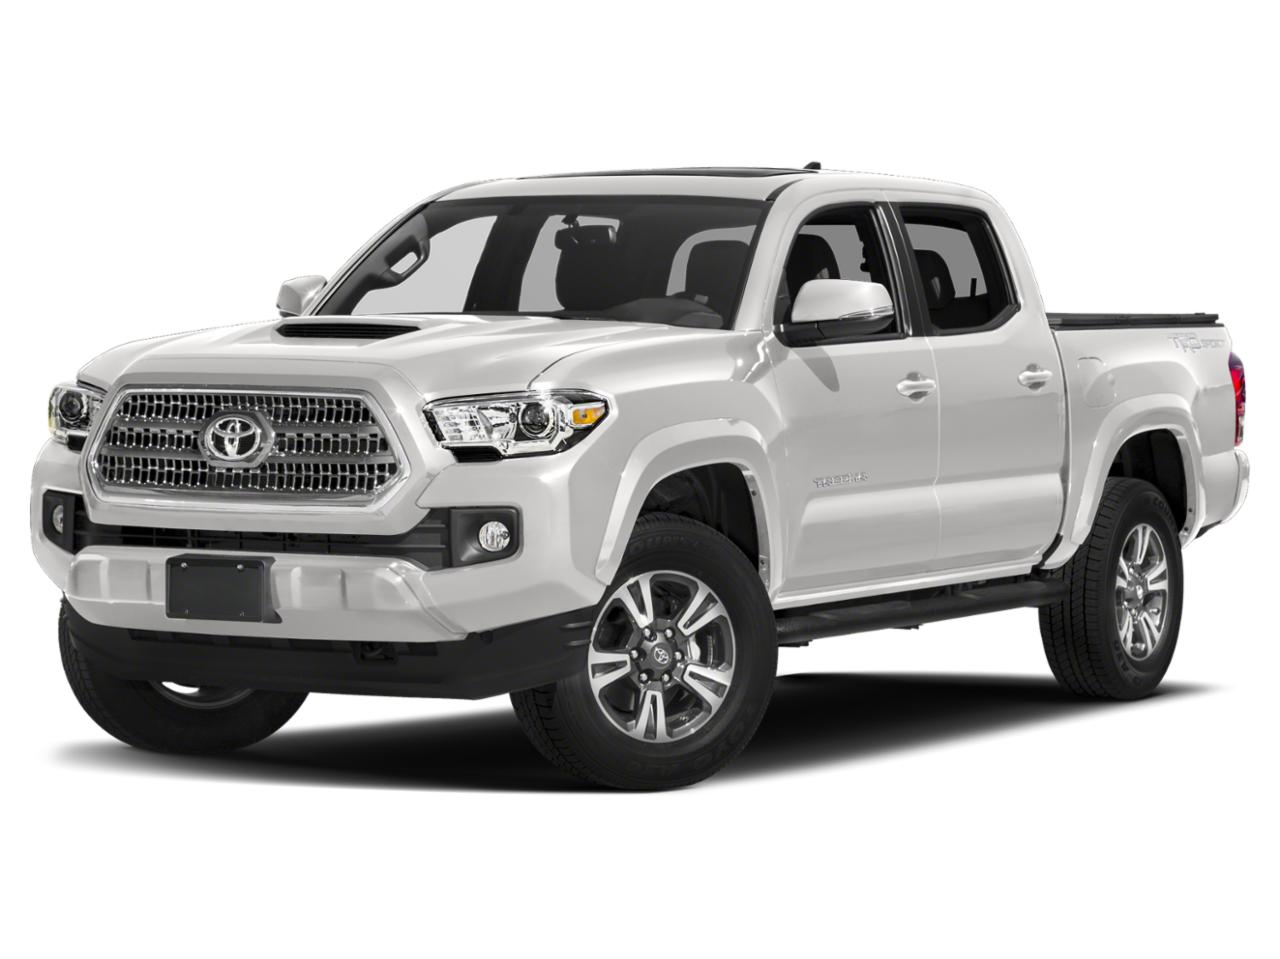 2018 Toyota Tacoma Vehicle Photo in Anaheim, CA 92806